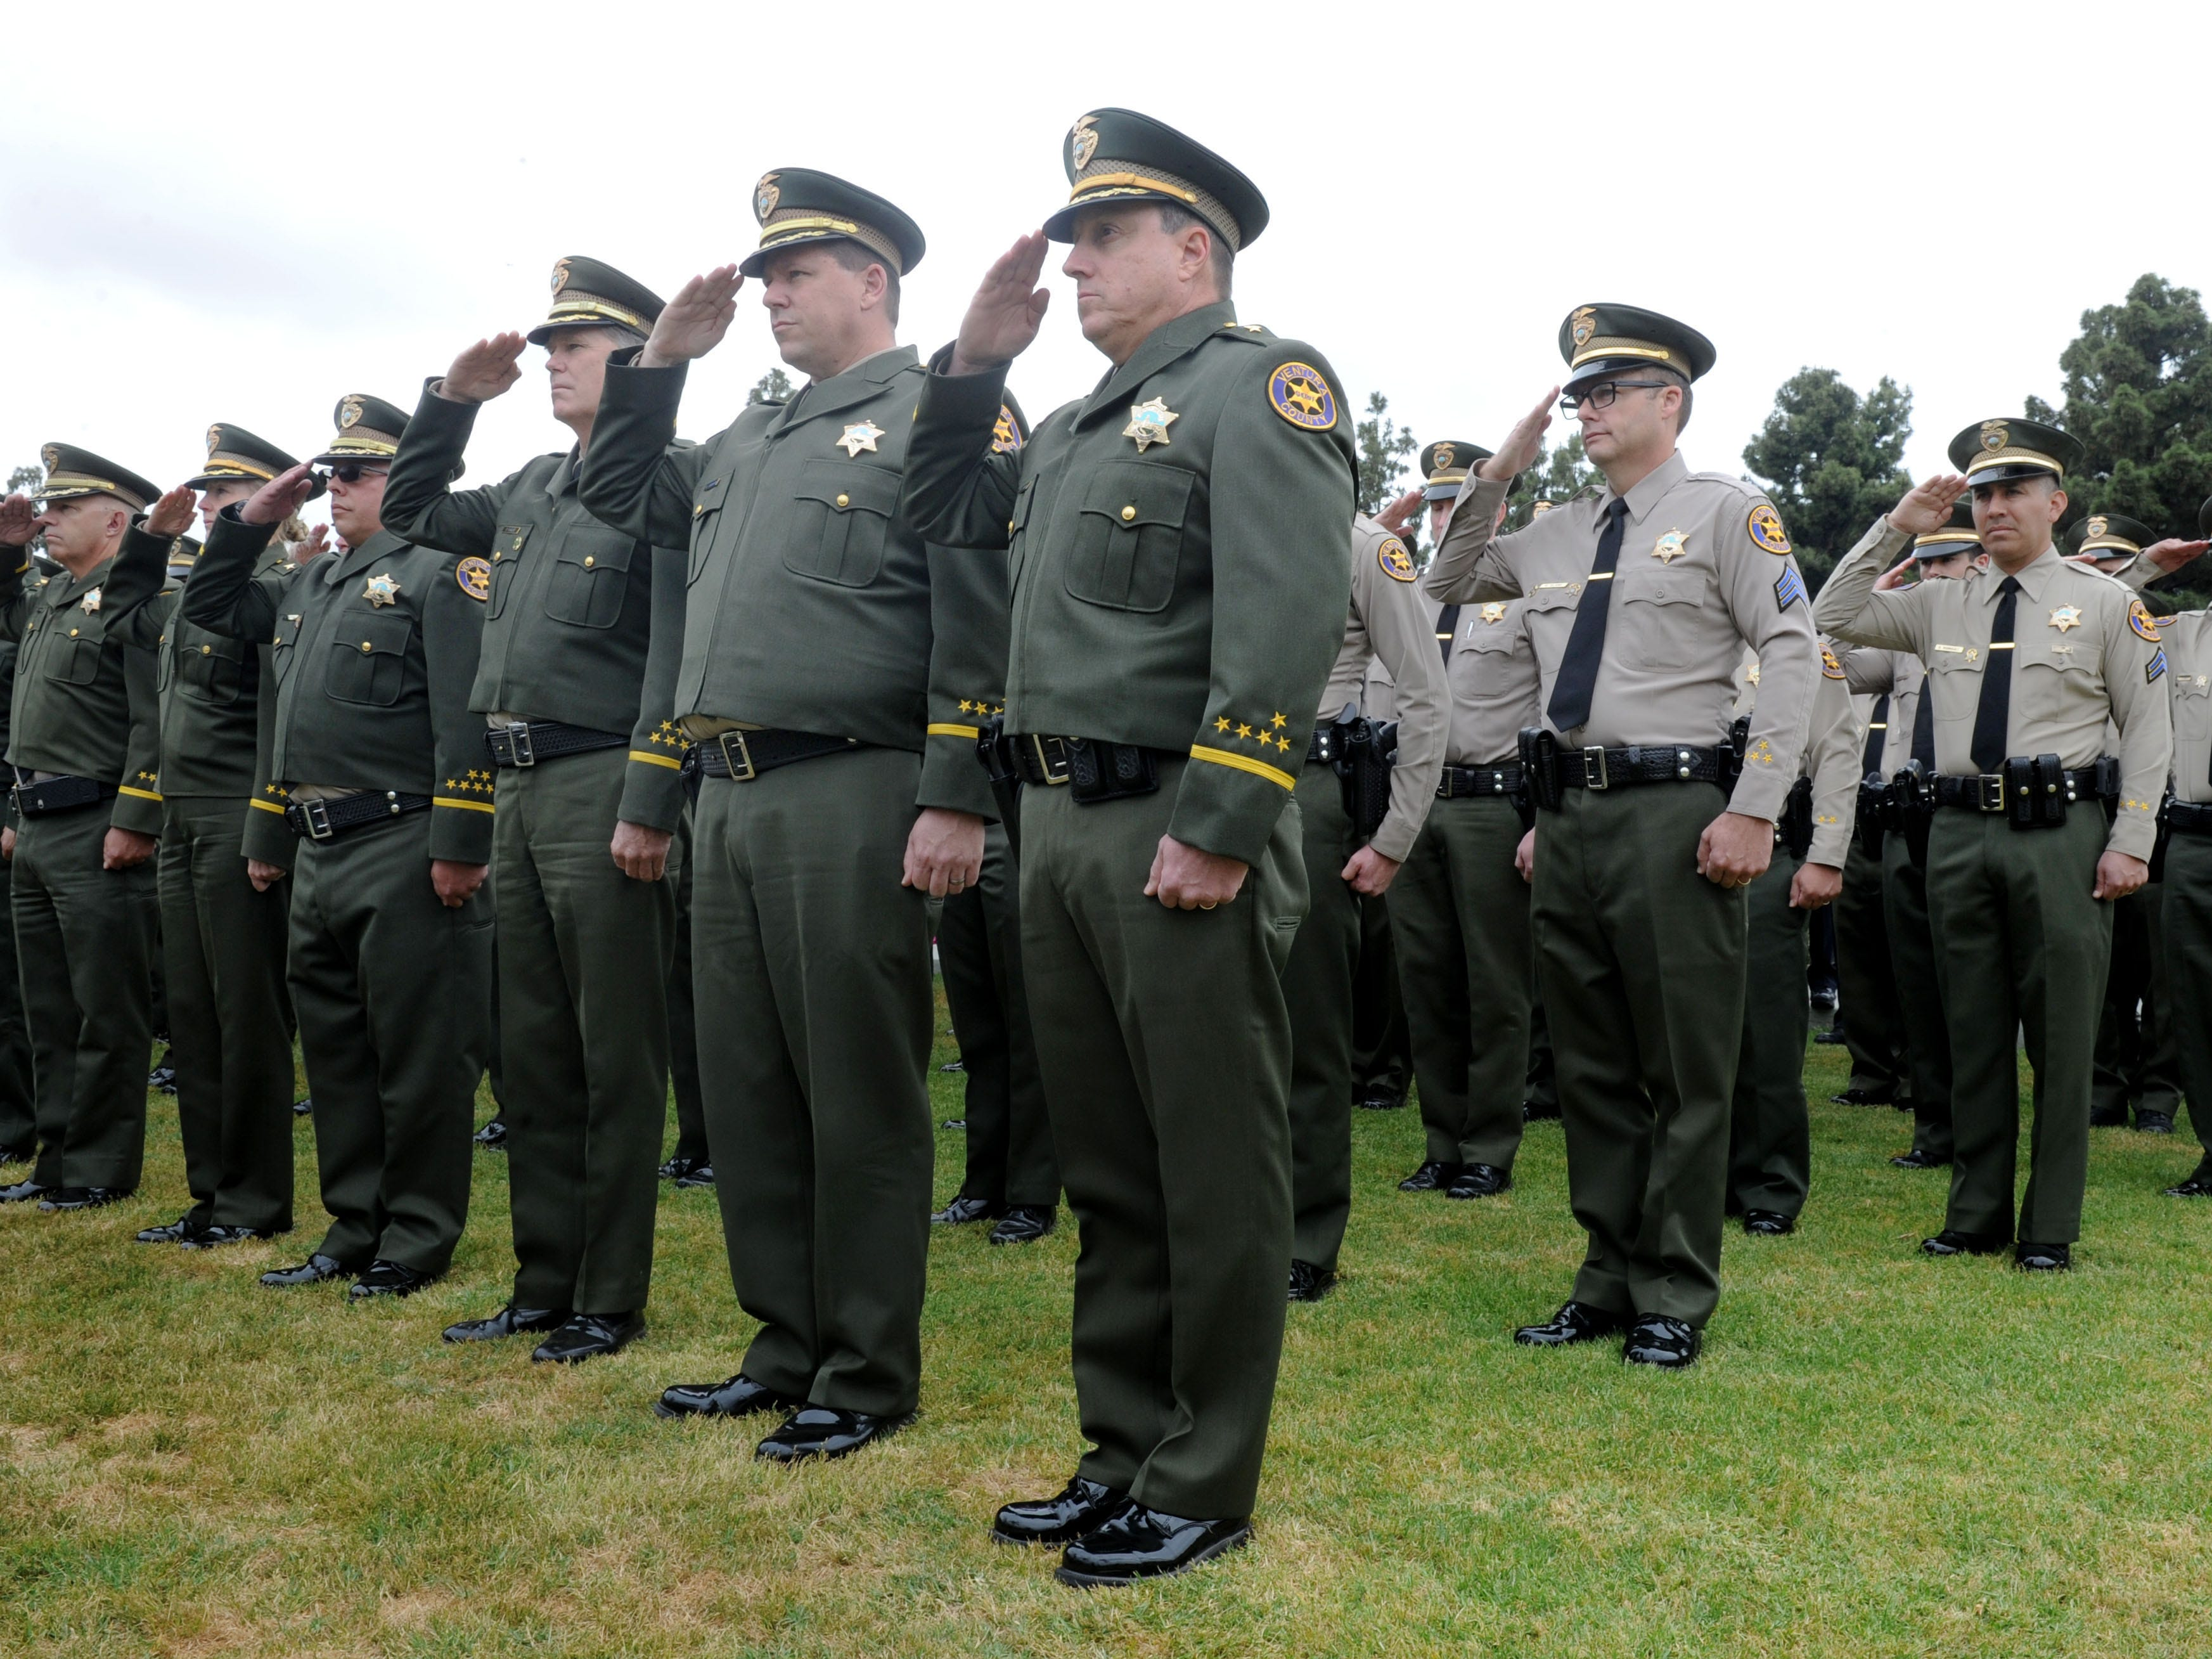 A large group of sheriff's officers salute at the Ventura County Peace Officers Memorial on Thursday at the Ventura County Government Center.